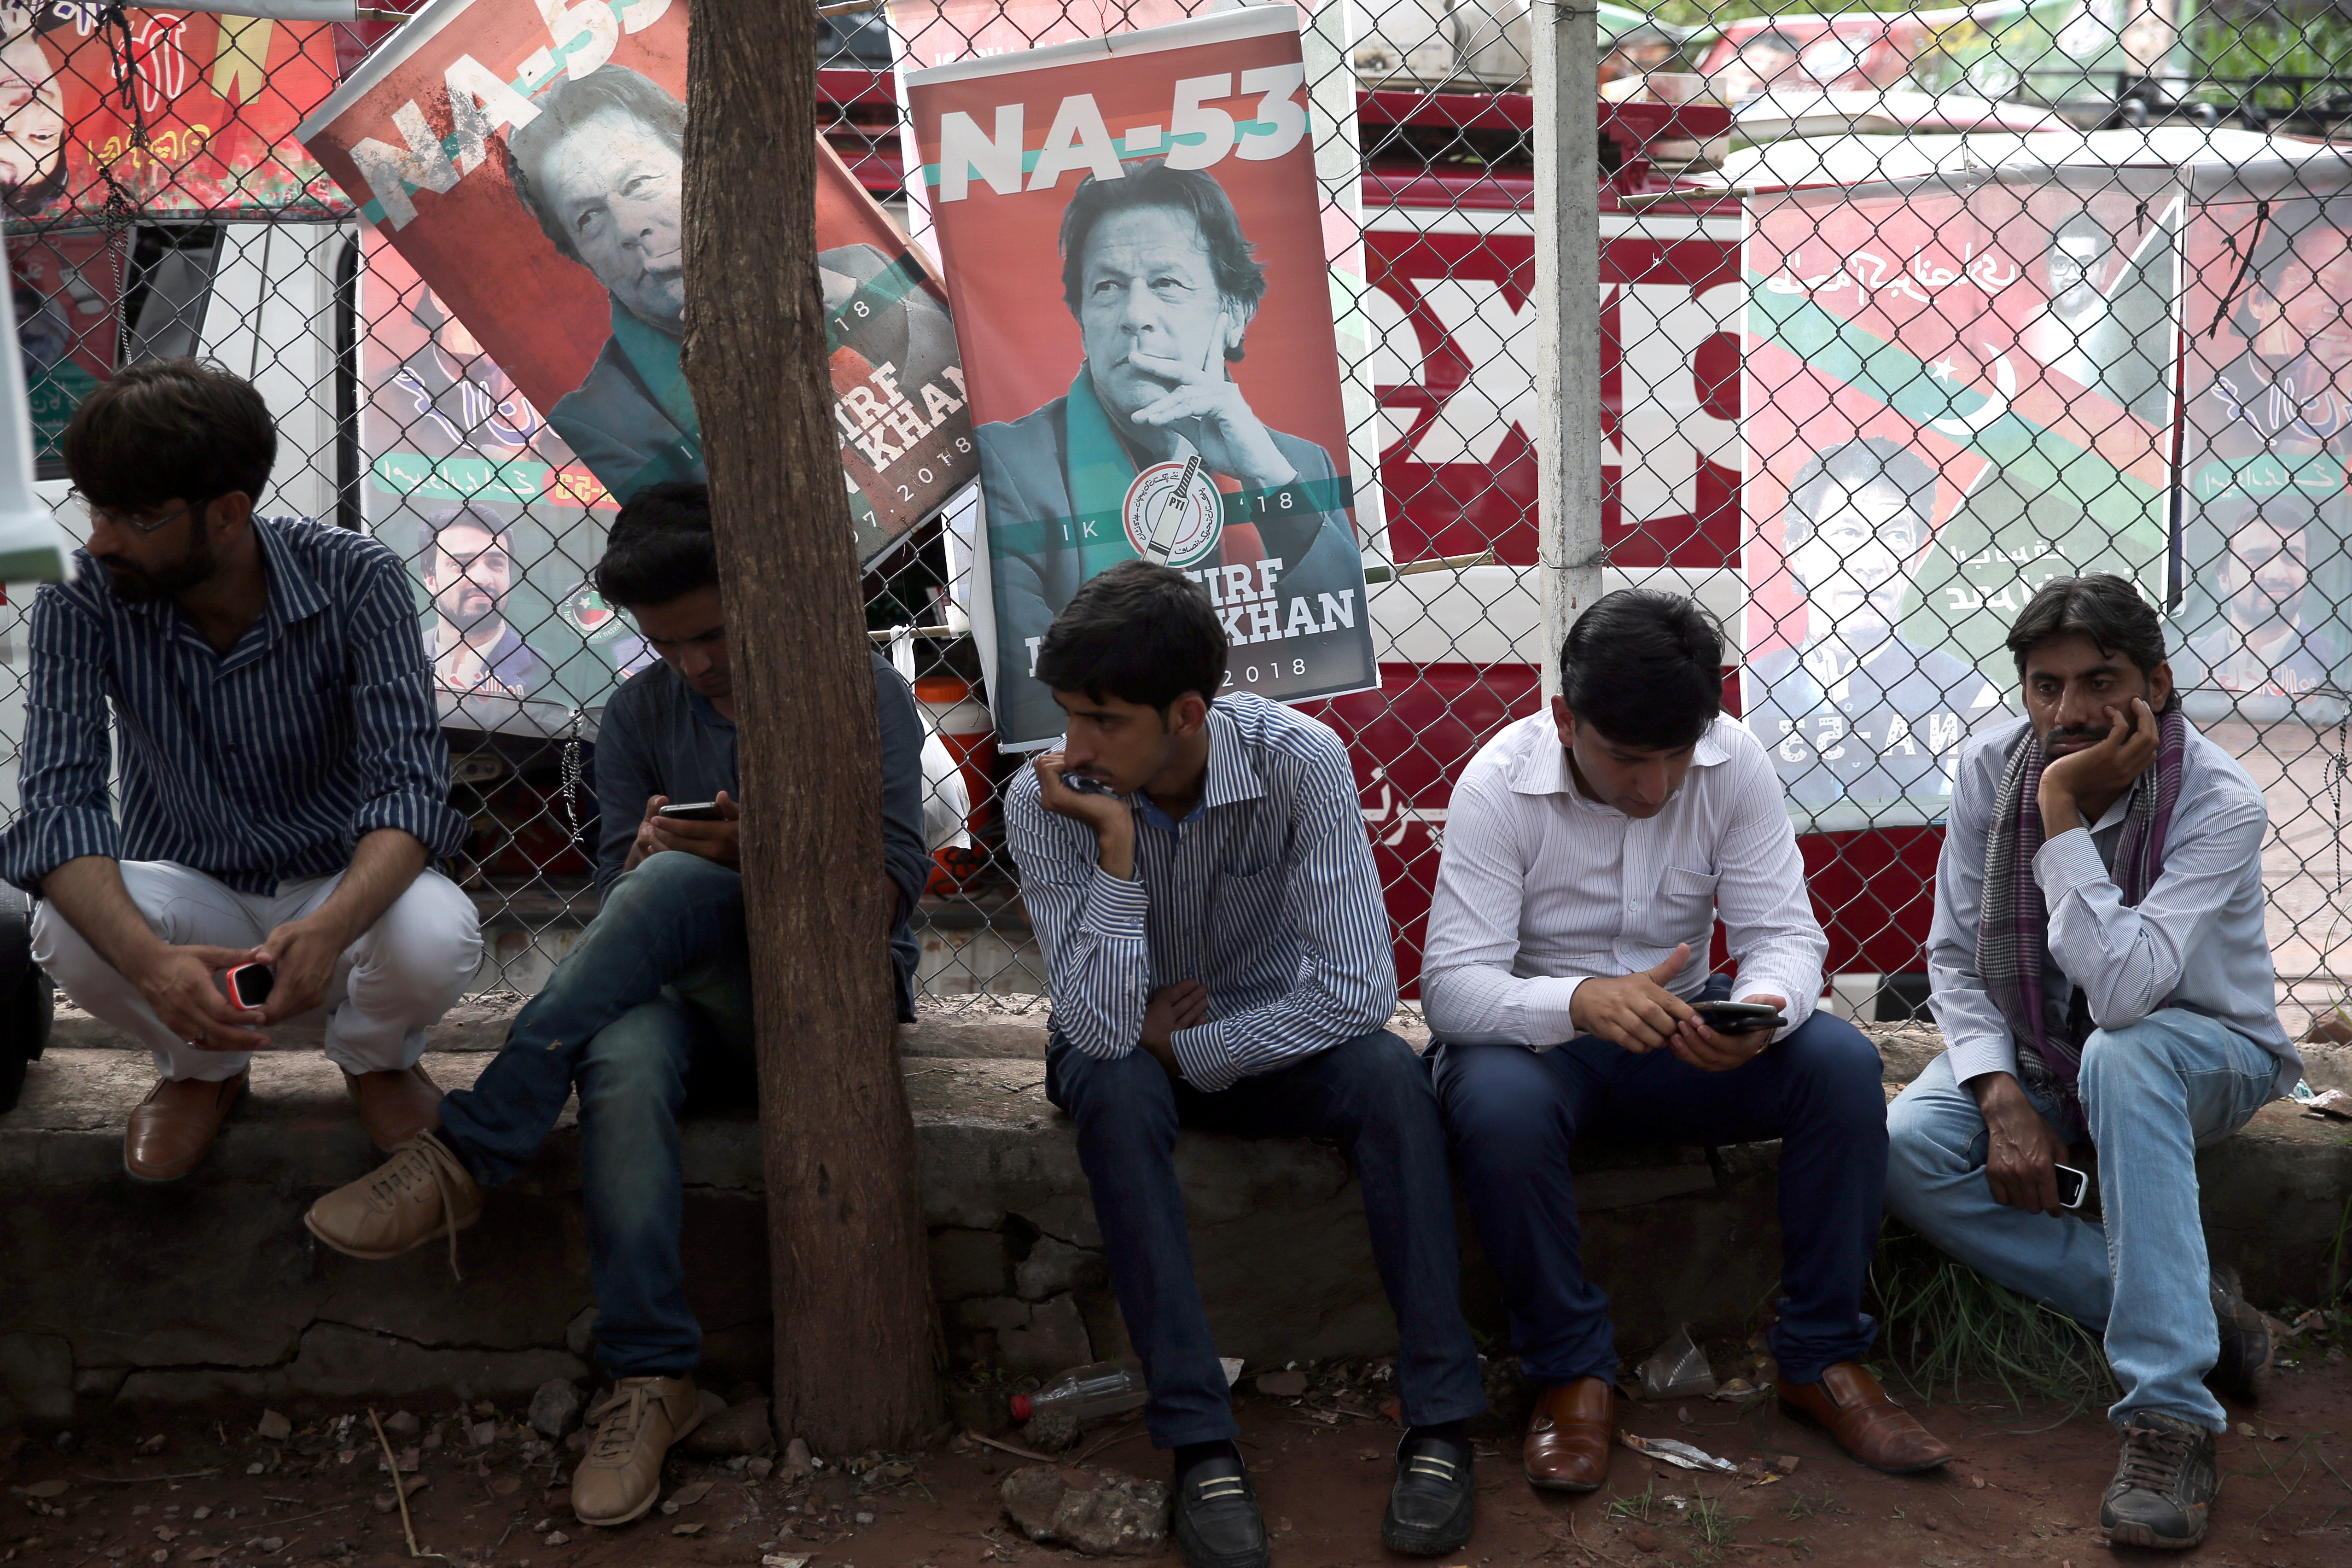 Supporters of cricket star-turned-politician Imran Khan, chairman of Pakistan Tehreek-e-Insaf (PTI), wait outside his residence, a day after the general election in Islamabad, Pakistan, July 26, 2018.